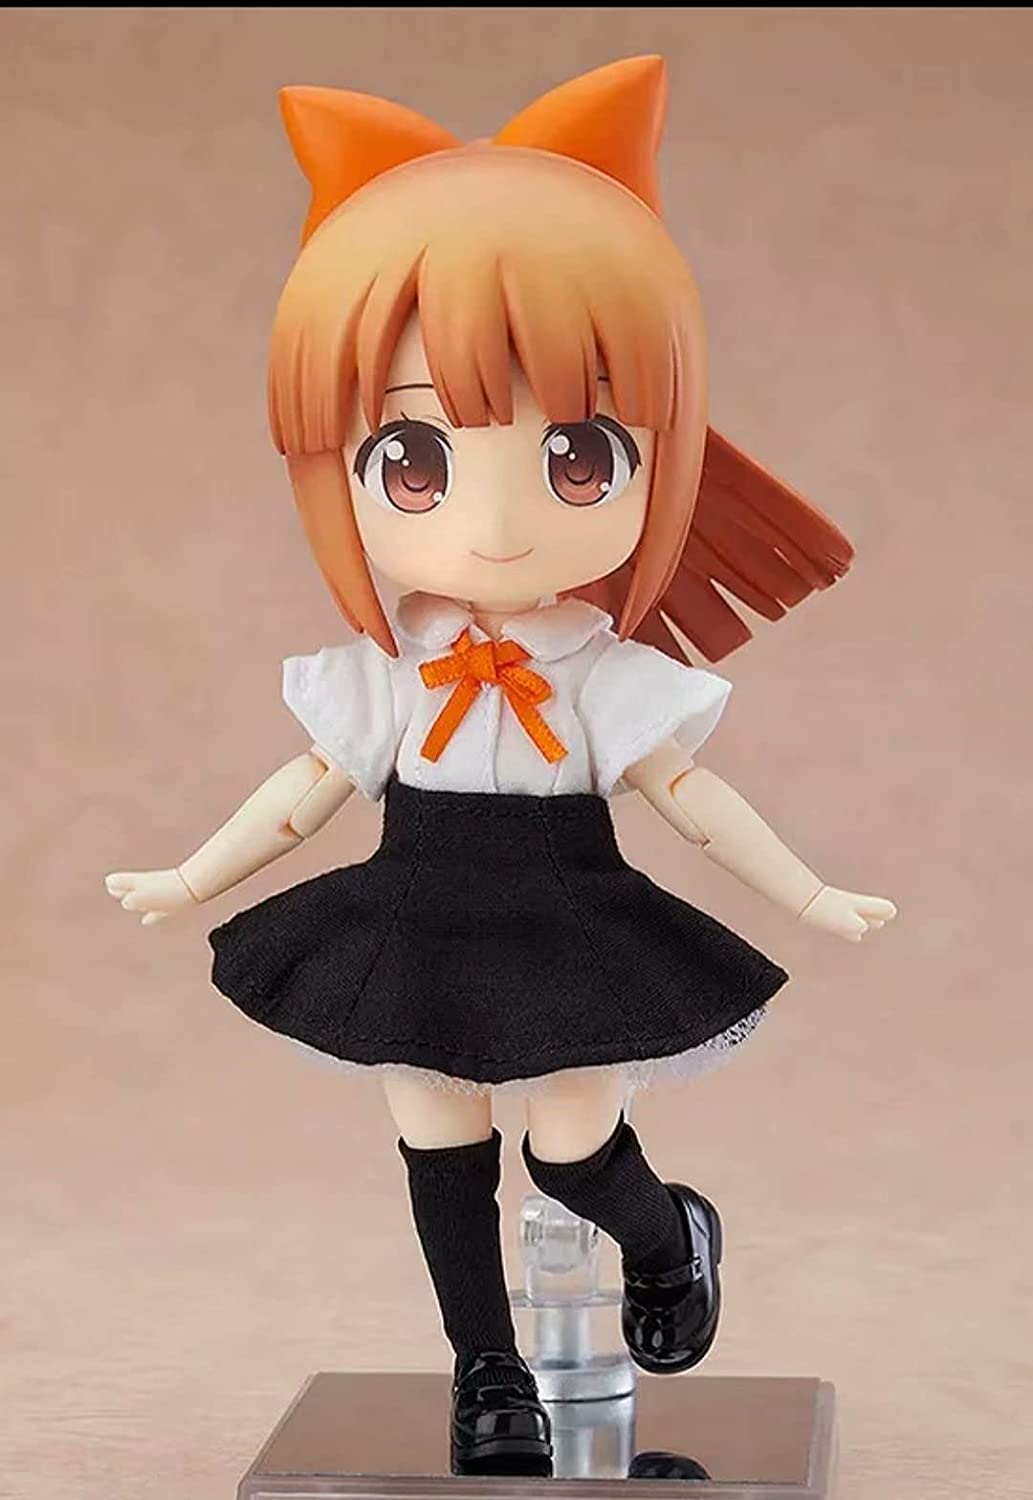 FWSJK Ryo Emily PVC Sales Material Character Stand Statue Figure 2021new shipping free Anime